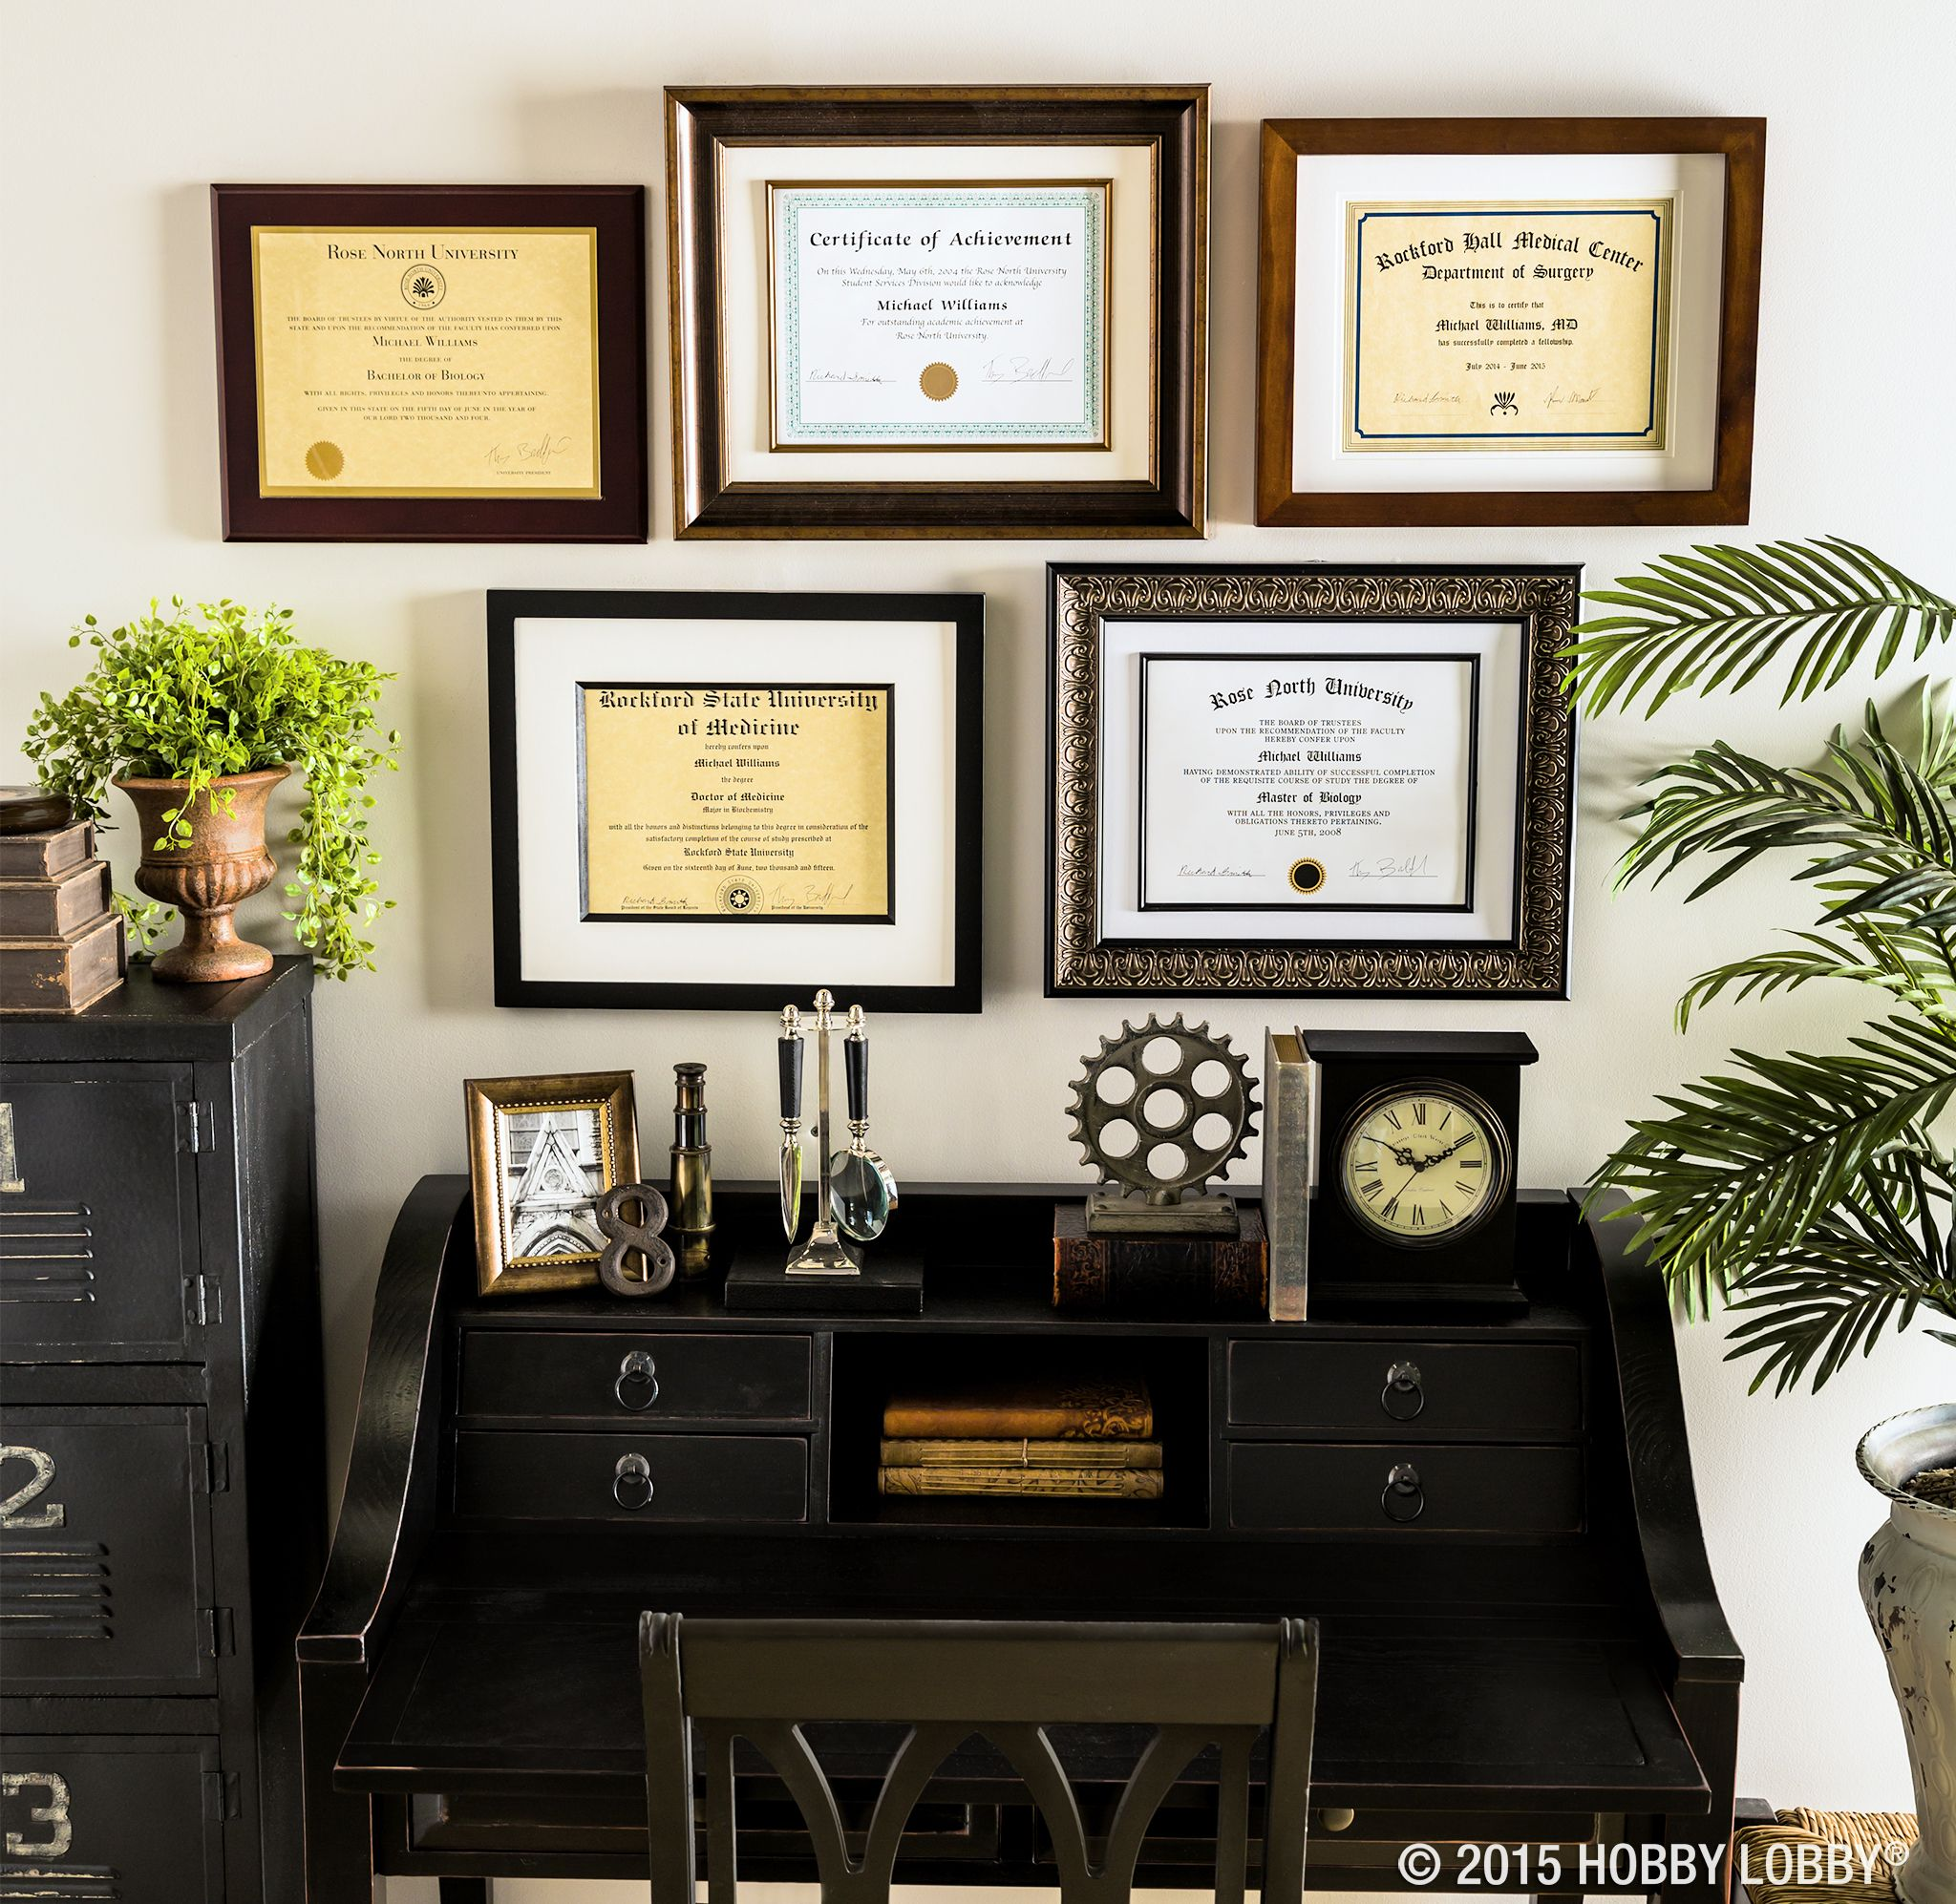 6 Ideas On How To Display Your Home Accessories: Celebrate Your Accomplishments By Framing Your Diploma For